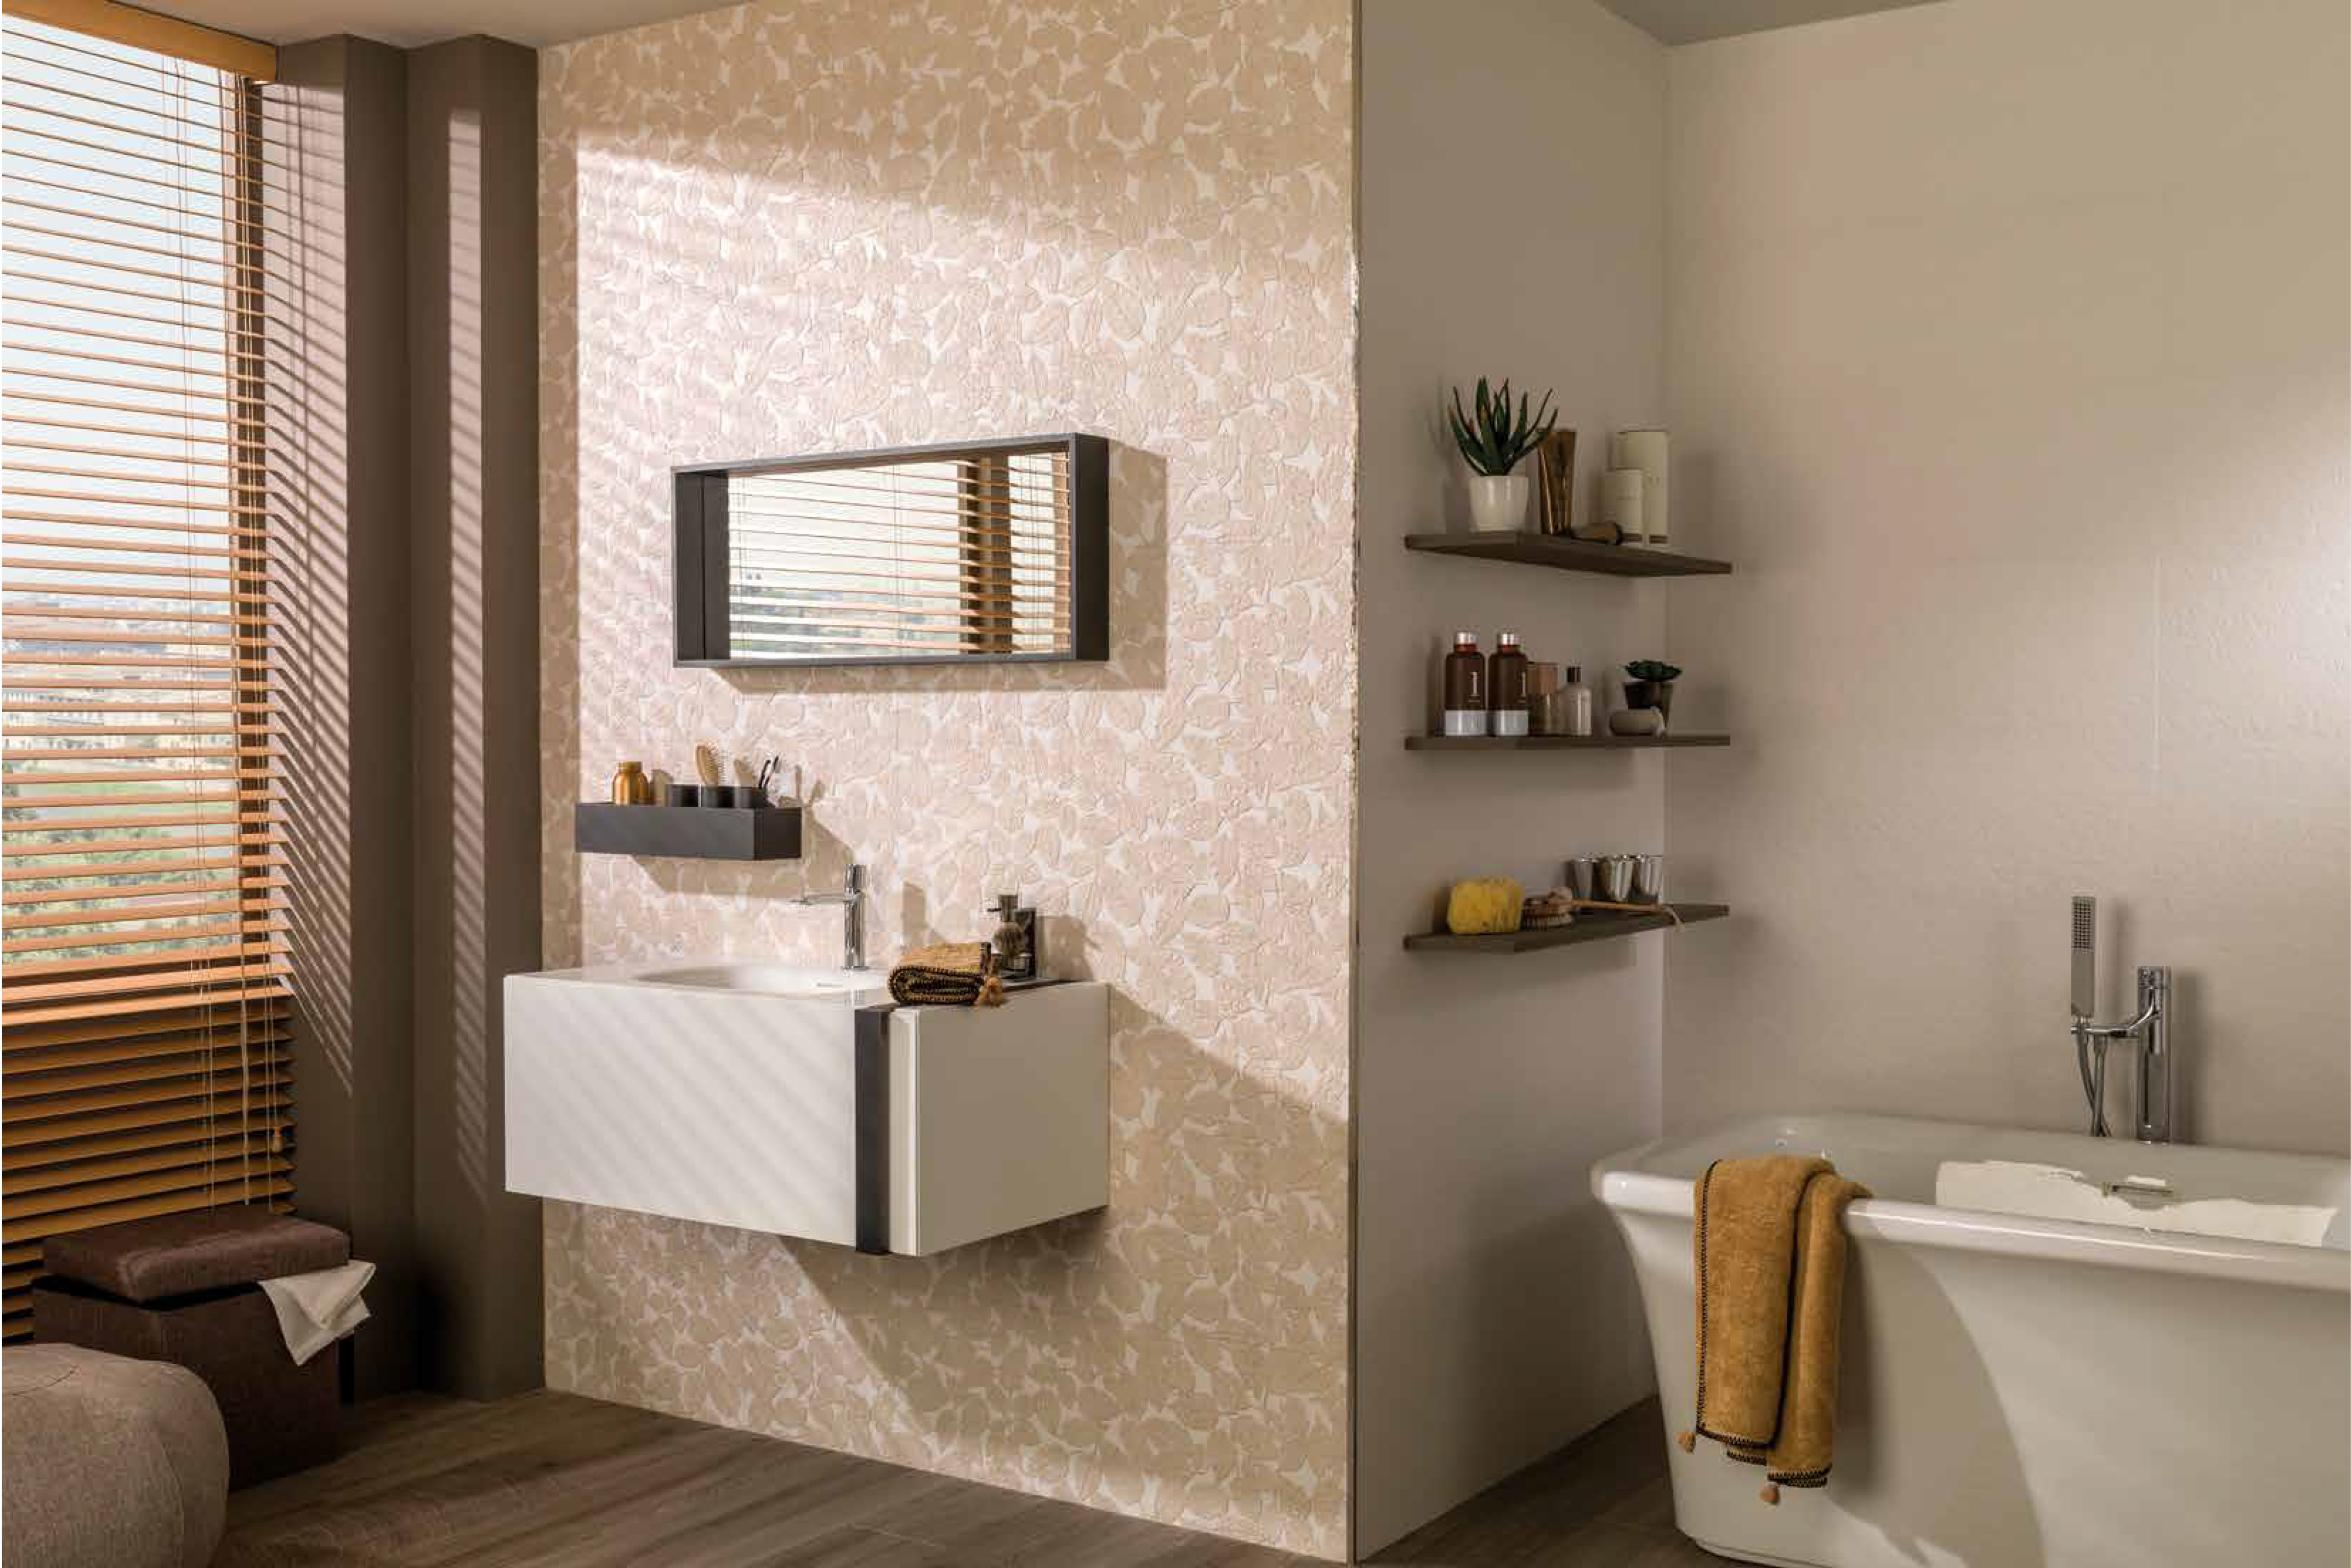 Porcelanosa Bathroom Accessories Nature Inspired Look Tiles And Bathroom Furniture